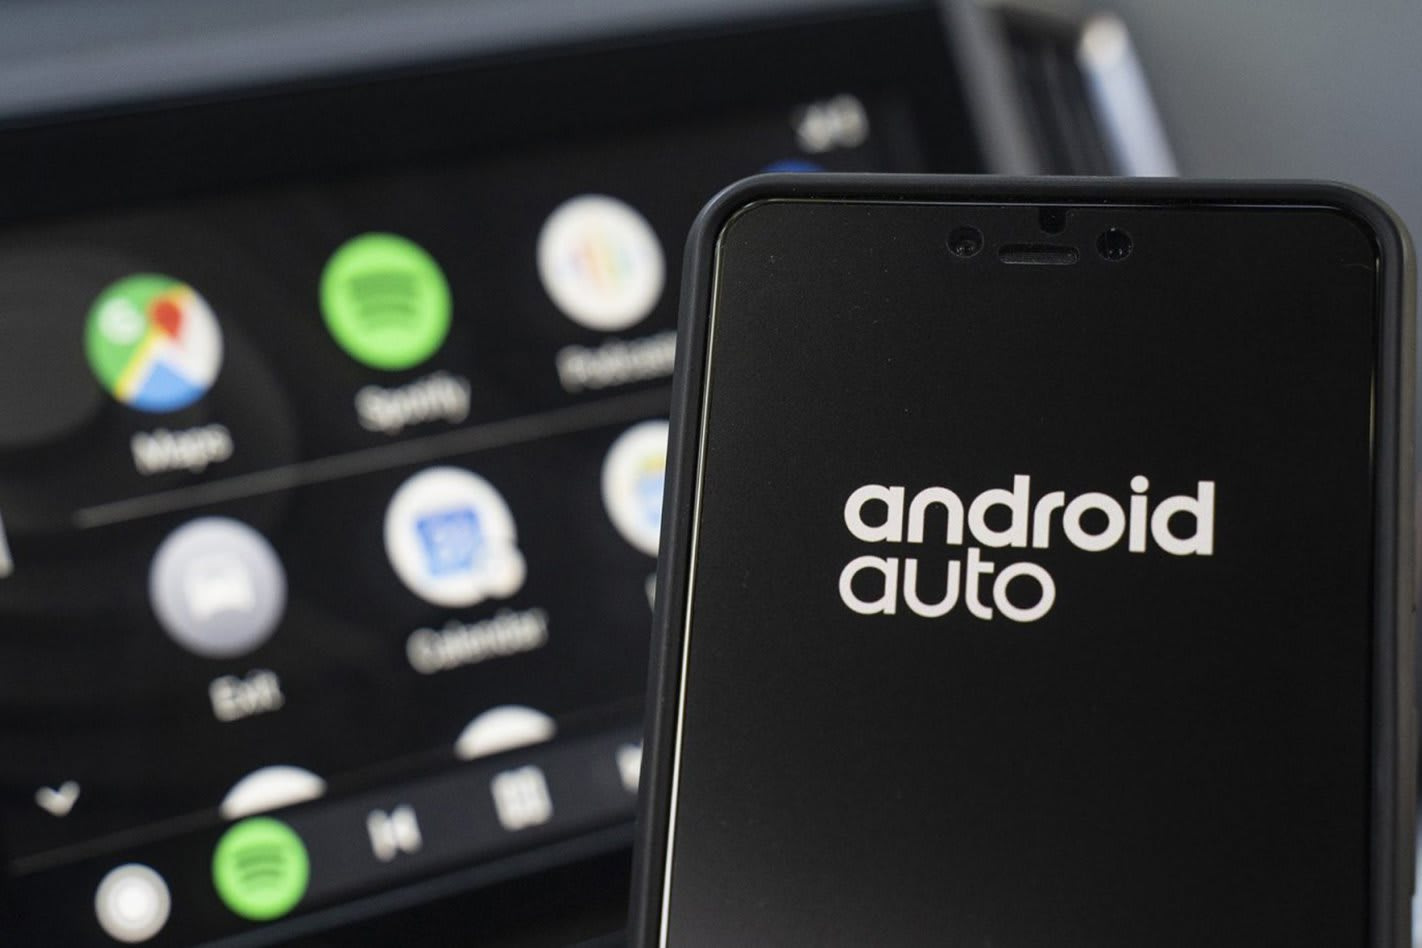 Archive Whichcar 2020 08 31 1 Wireless Android Auto 1422